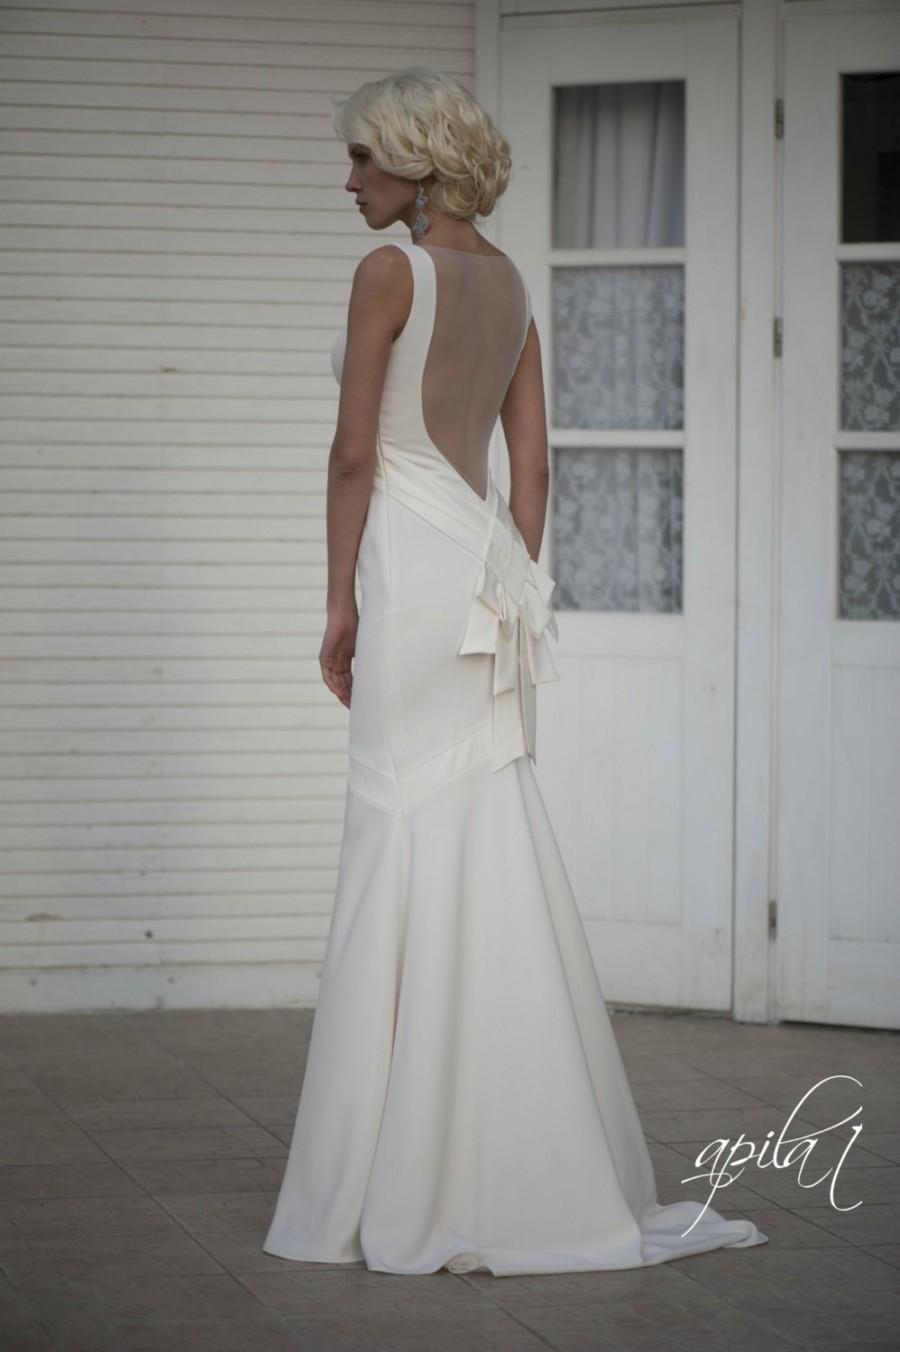 Hochzeit - Long Wedding Dress with Train, Bridal Gown with Open Back, Crepe Wedding Gown L14, Romantic wedding gown, Classic bridal dress, Custom dress